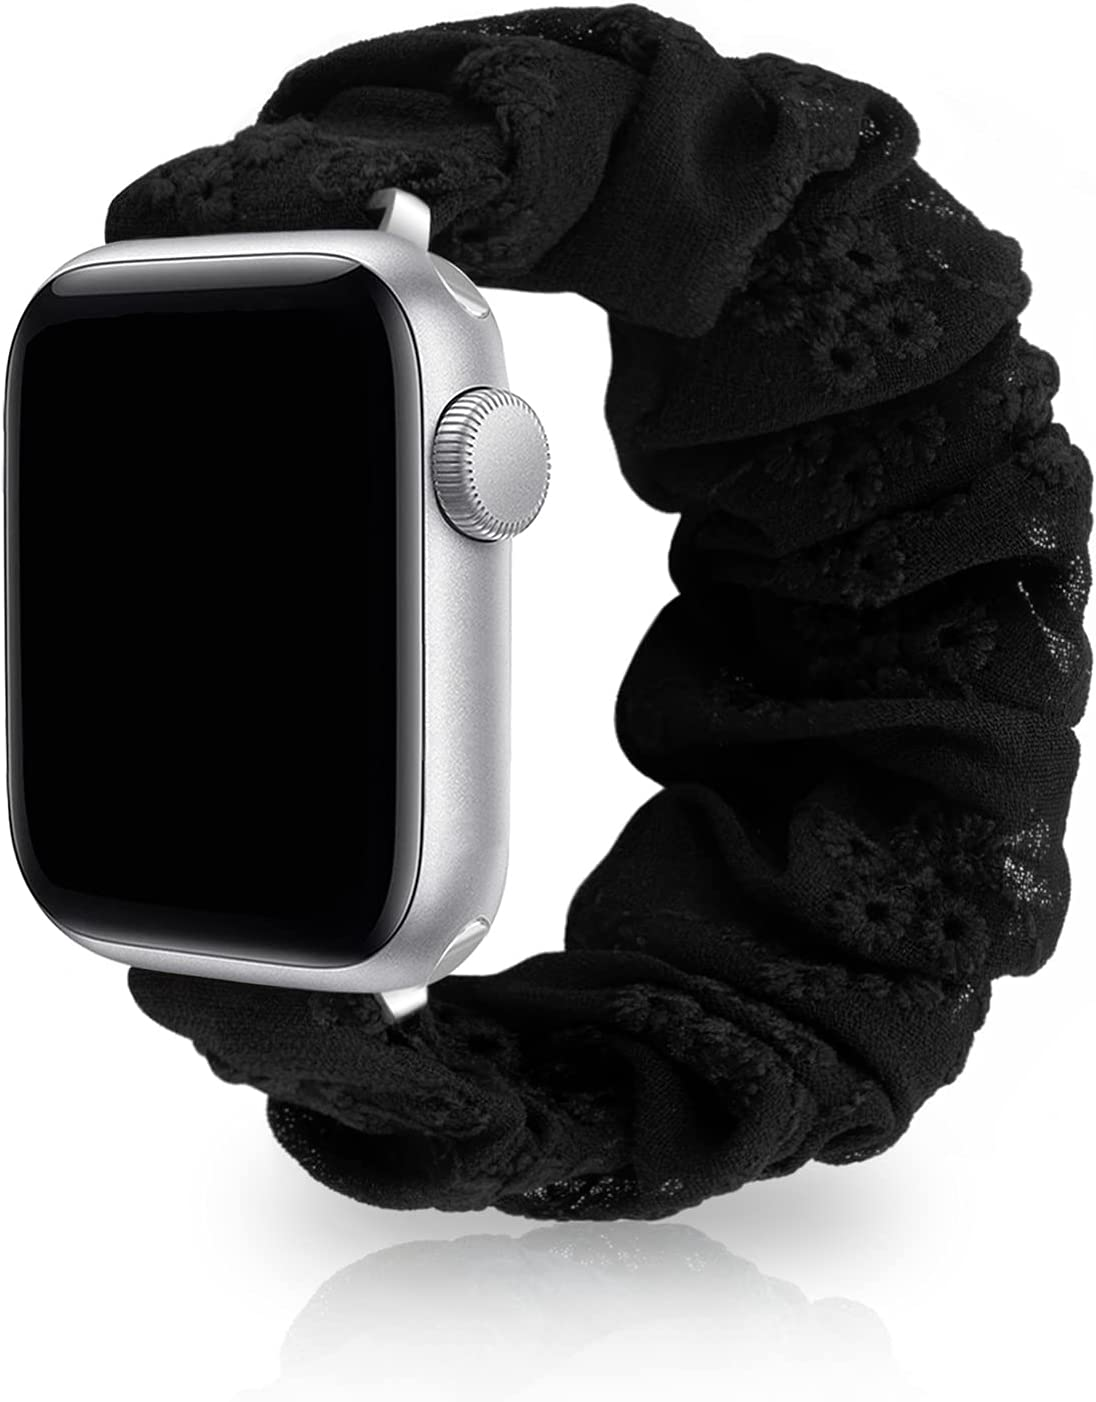 SAMYERLEN Compatible with Scrunchie Apple Watch Band 38mm 42mm 40mm 44mm for Women, Embroidery Elastic Watch Strap for iWatch Series SE 6 5 4 3 2 1, Cute Wristbands (S-38/40 Black)